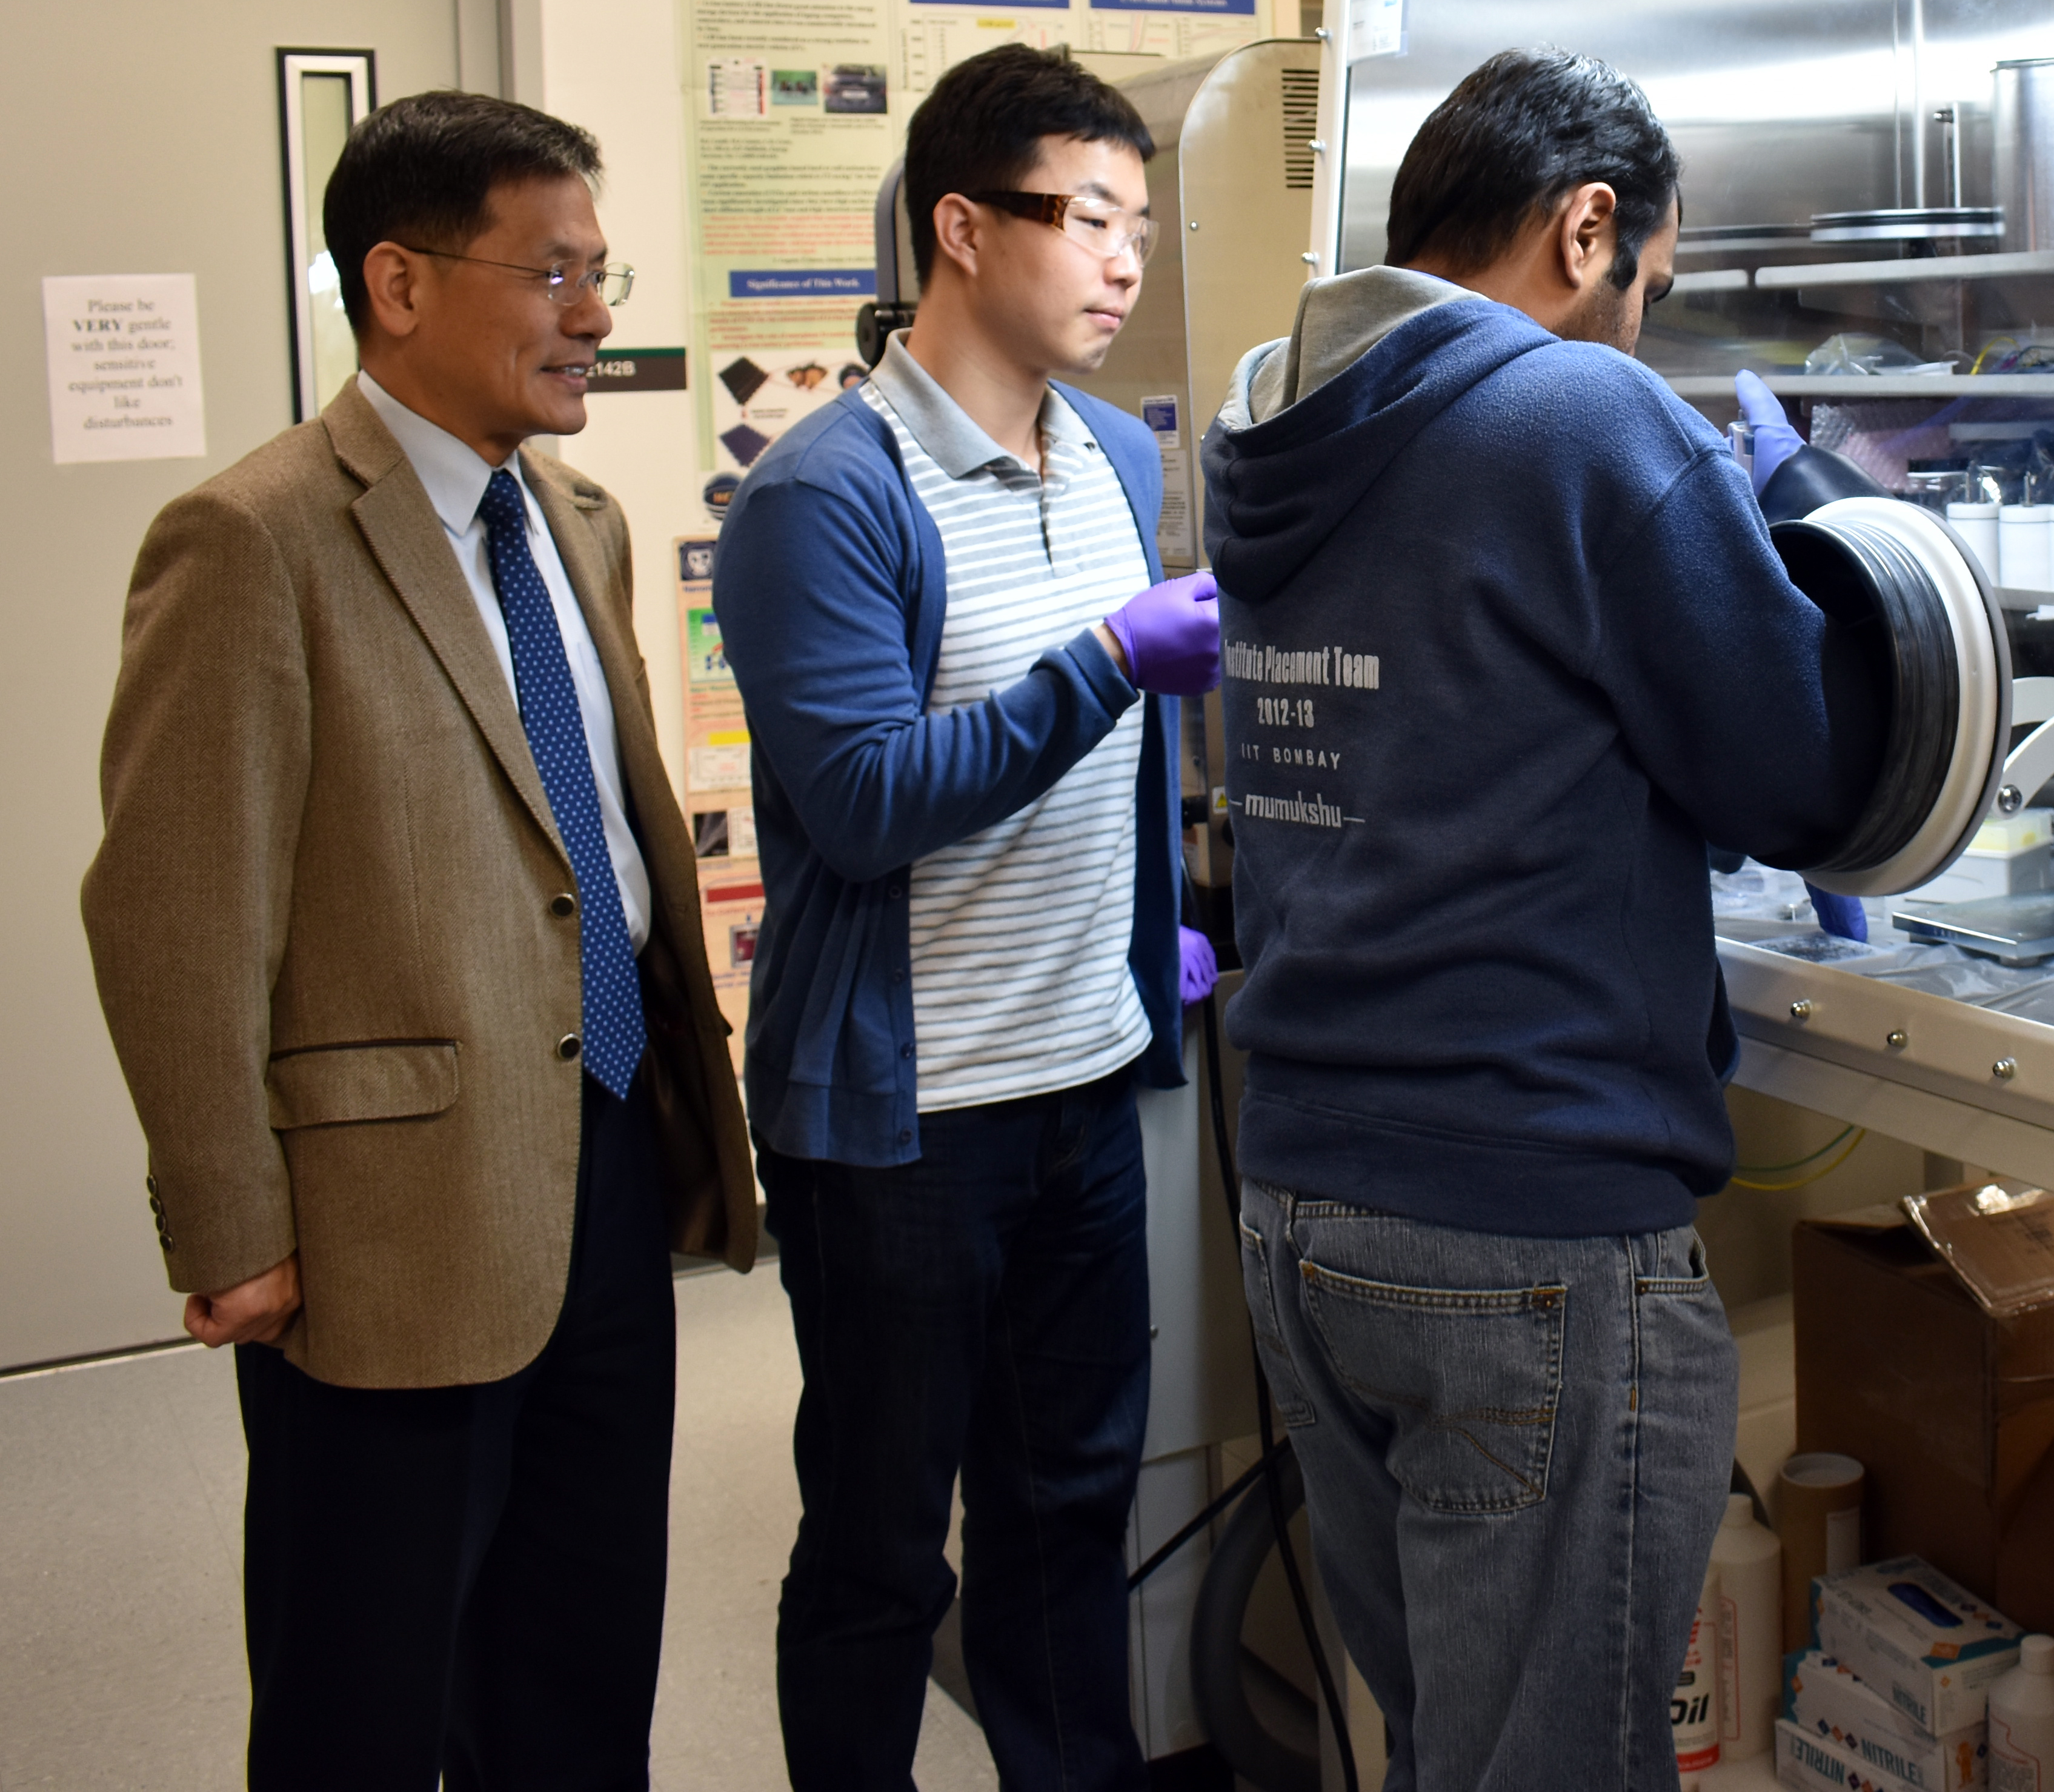 University of North Texas researchers in the College of Engineering's Department of Materials Science and Engineering have created a uniform, thin, two-dimensional material that could revolutionize materials science.